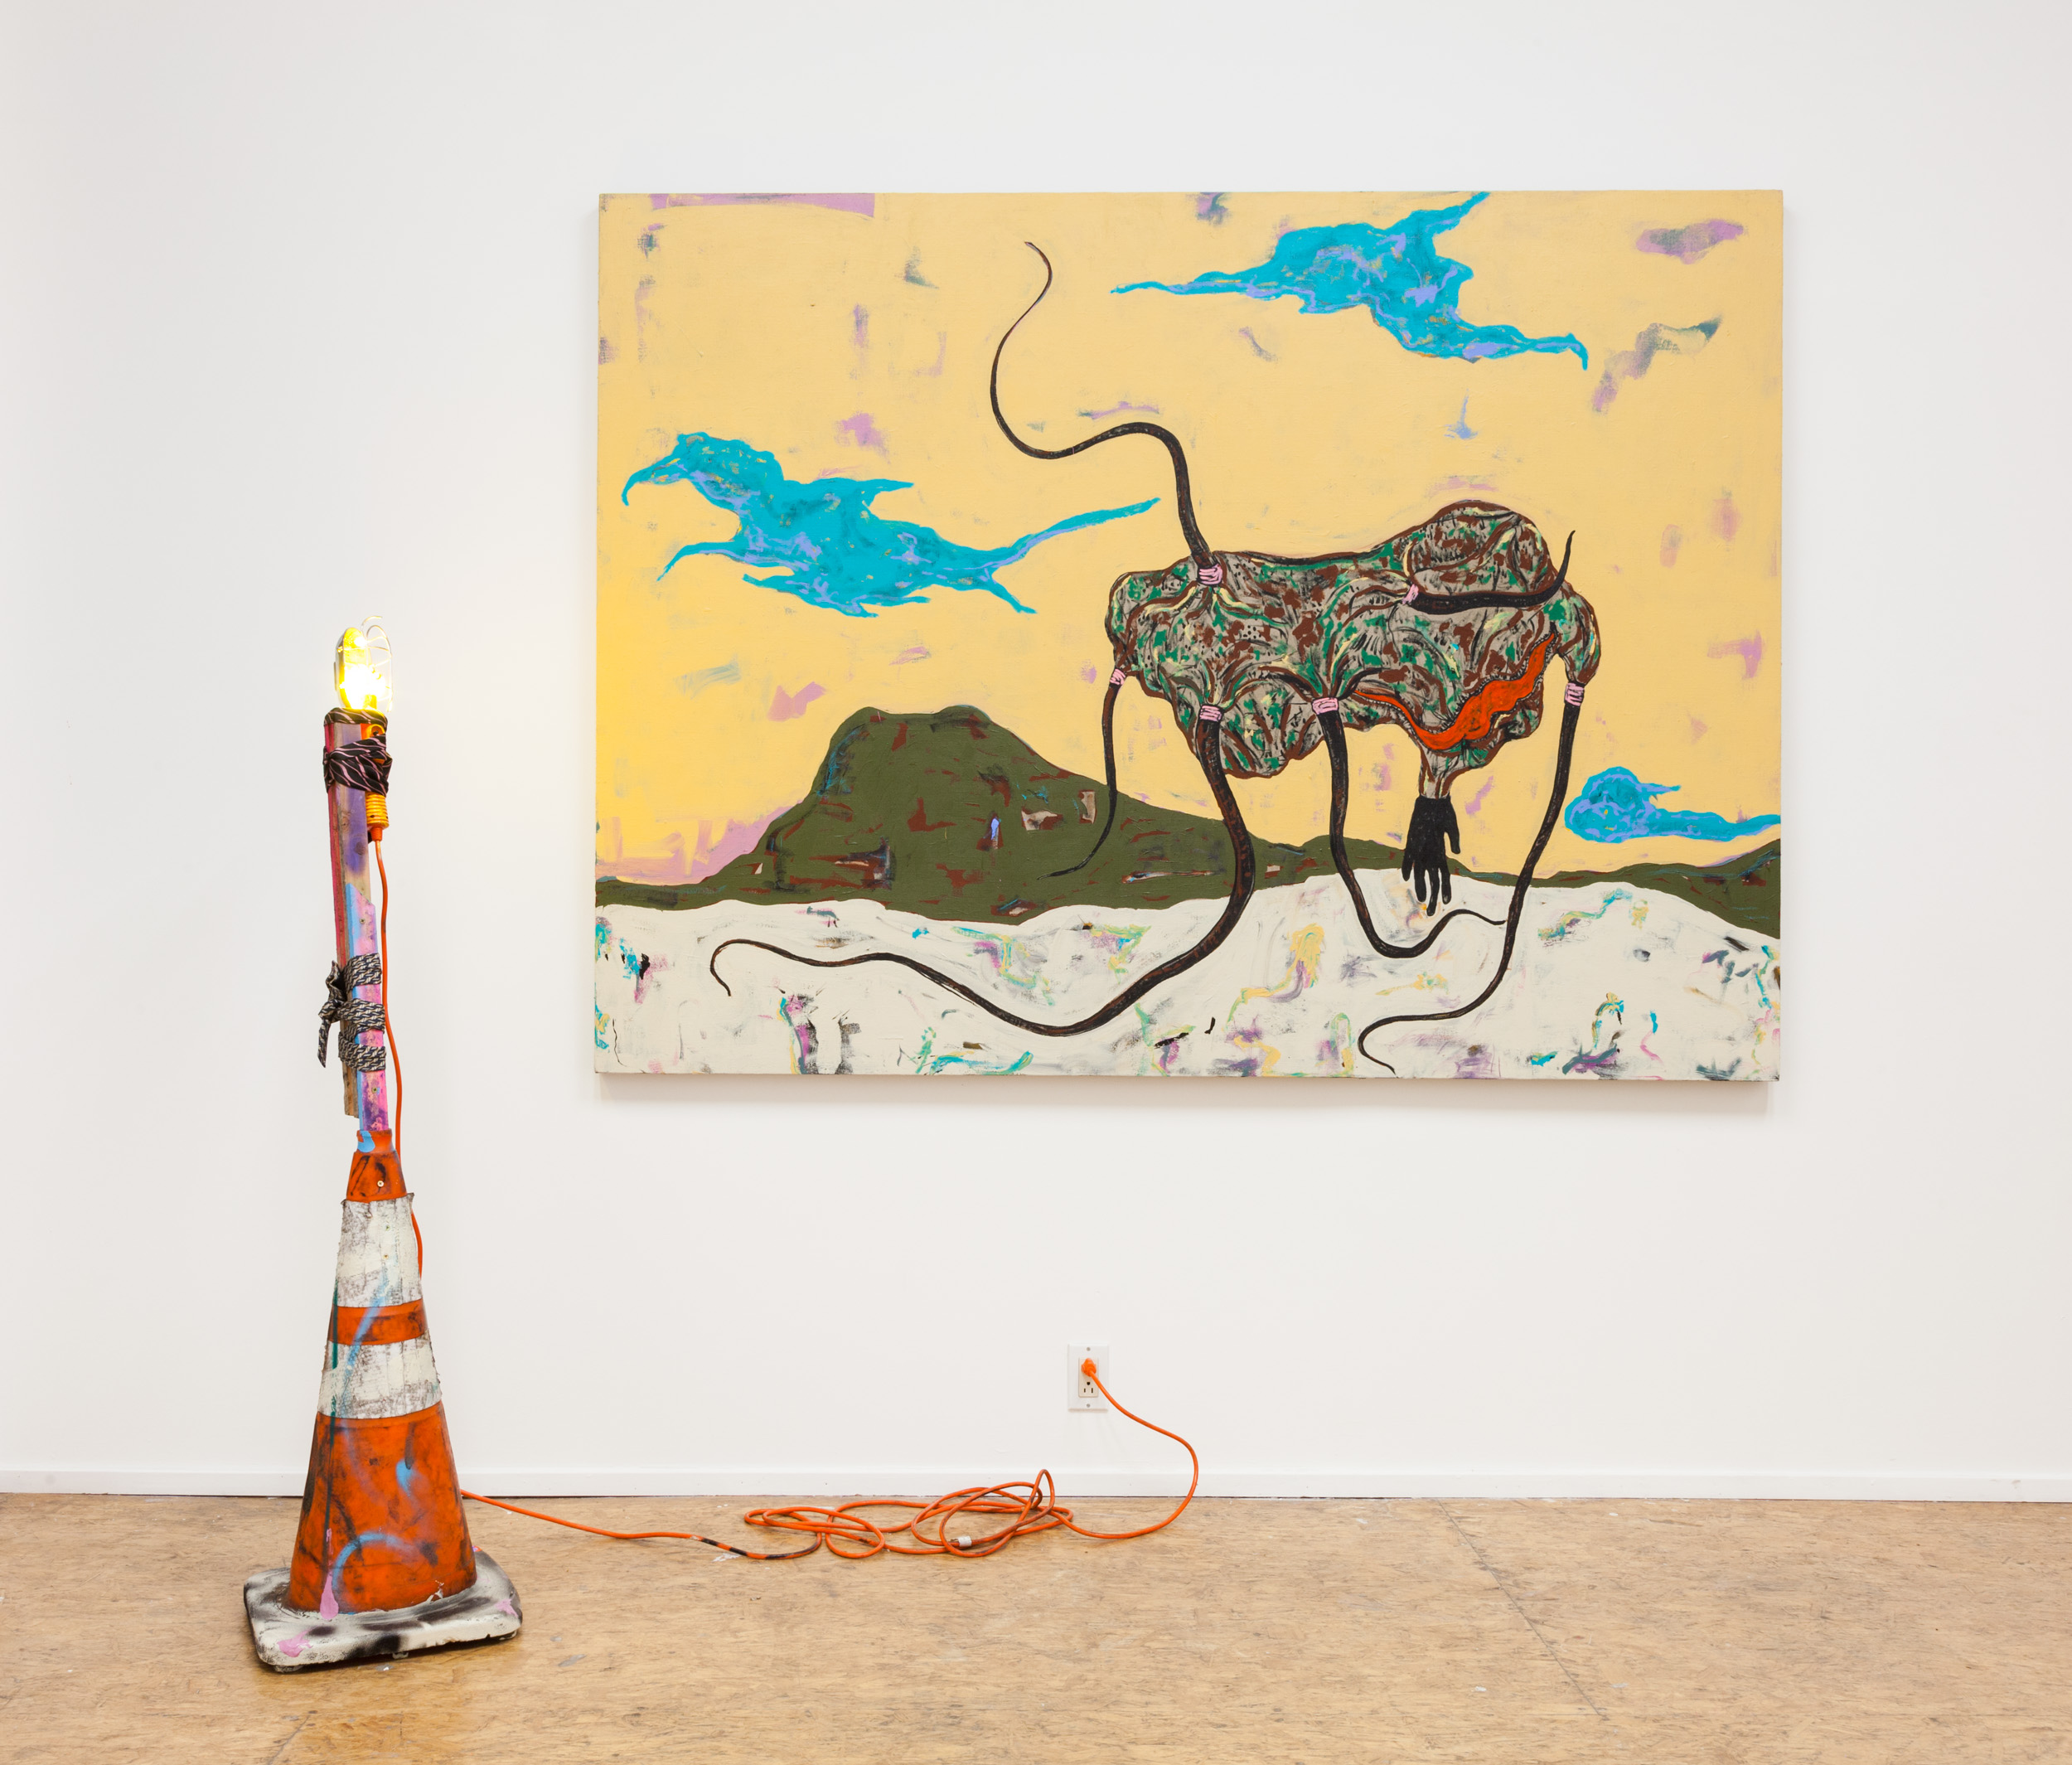 Simphiwe Ndzube  Beast and a Beacon ,2017 acrylic on linen, mixed media 59 x 79 x 1 in. (painting) 58 x 14 x 14 in. (sculpture)